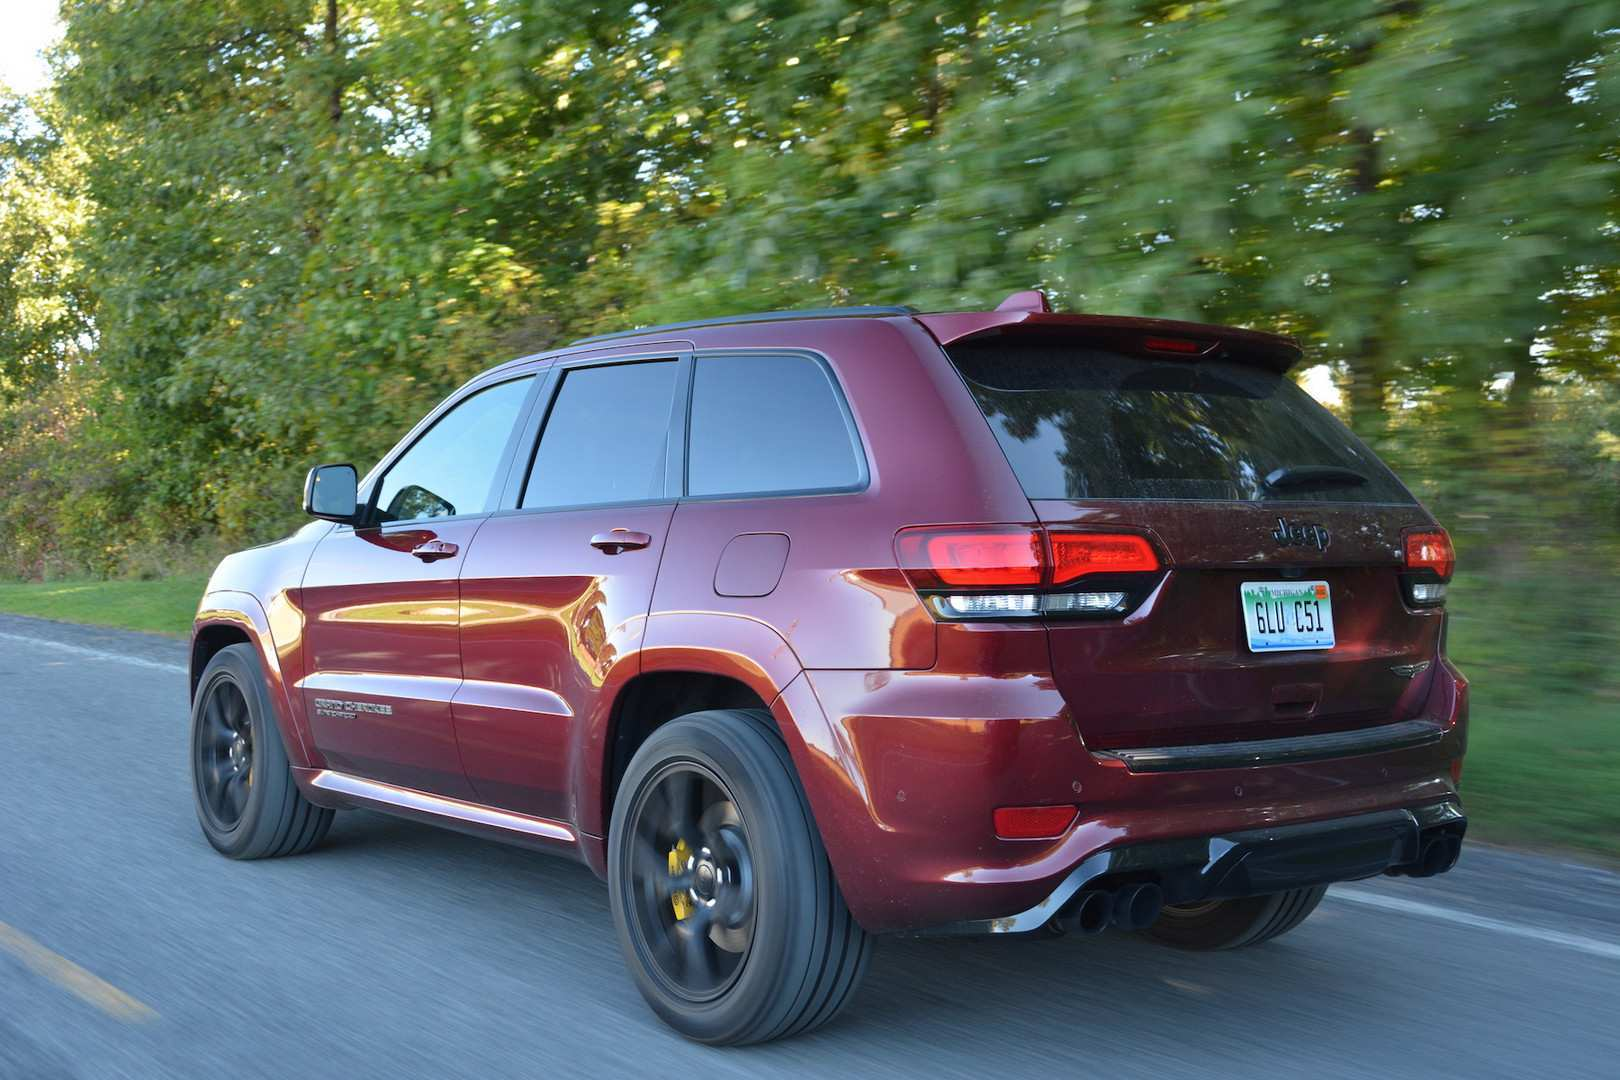 69 Best Review 2019 Jeep Grand Cherokee Trackhawk Speed Test for 2019 Jeep Grand Cherokee Trackhawk